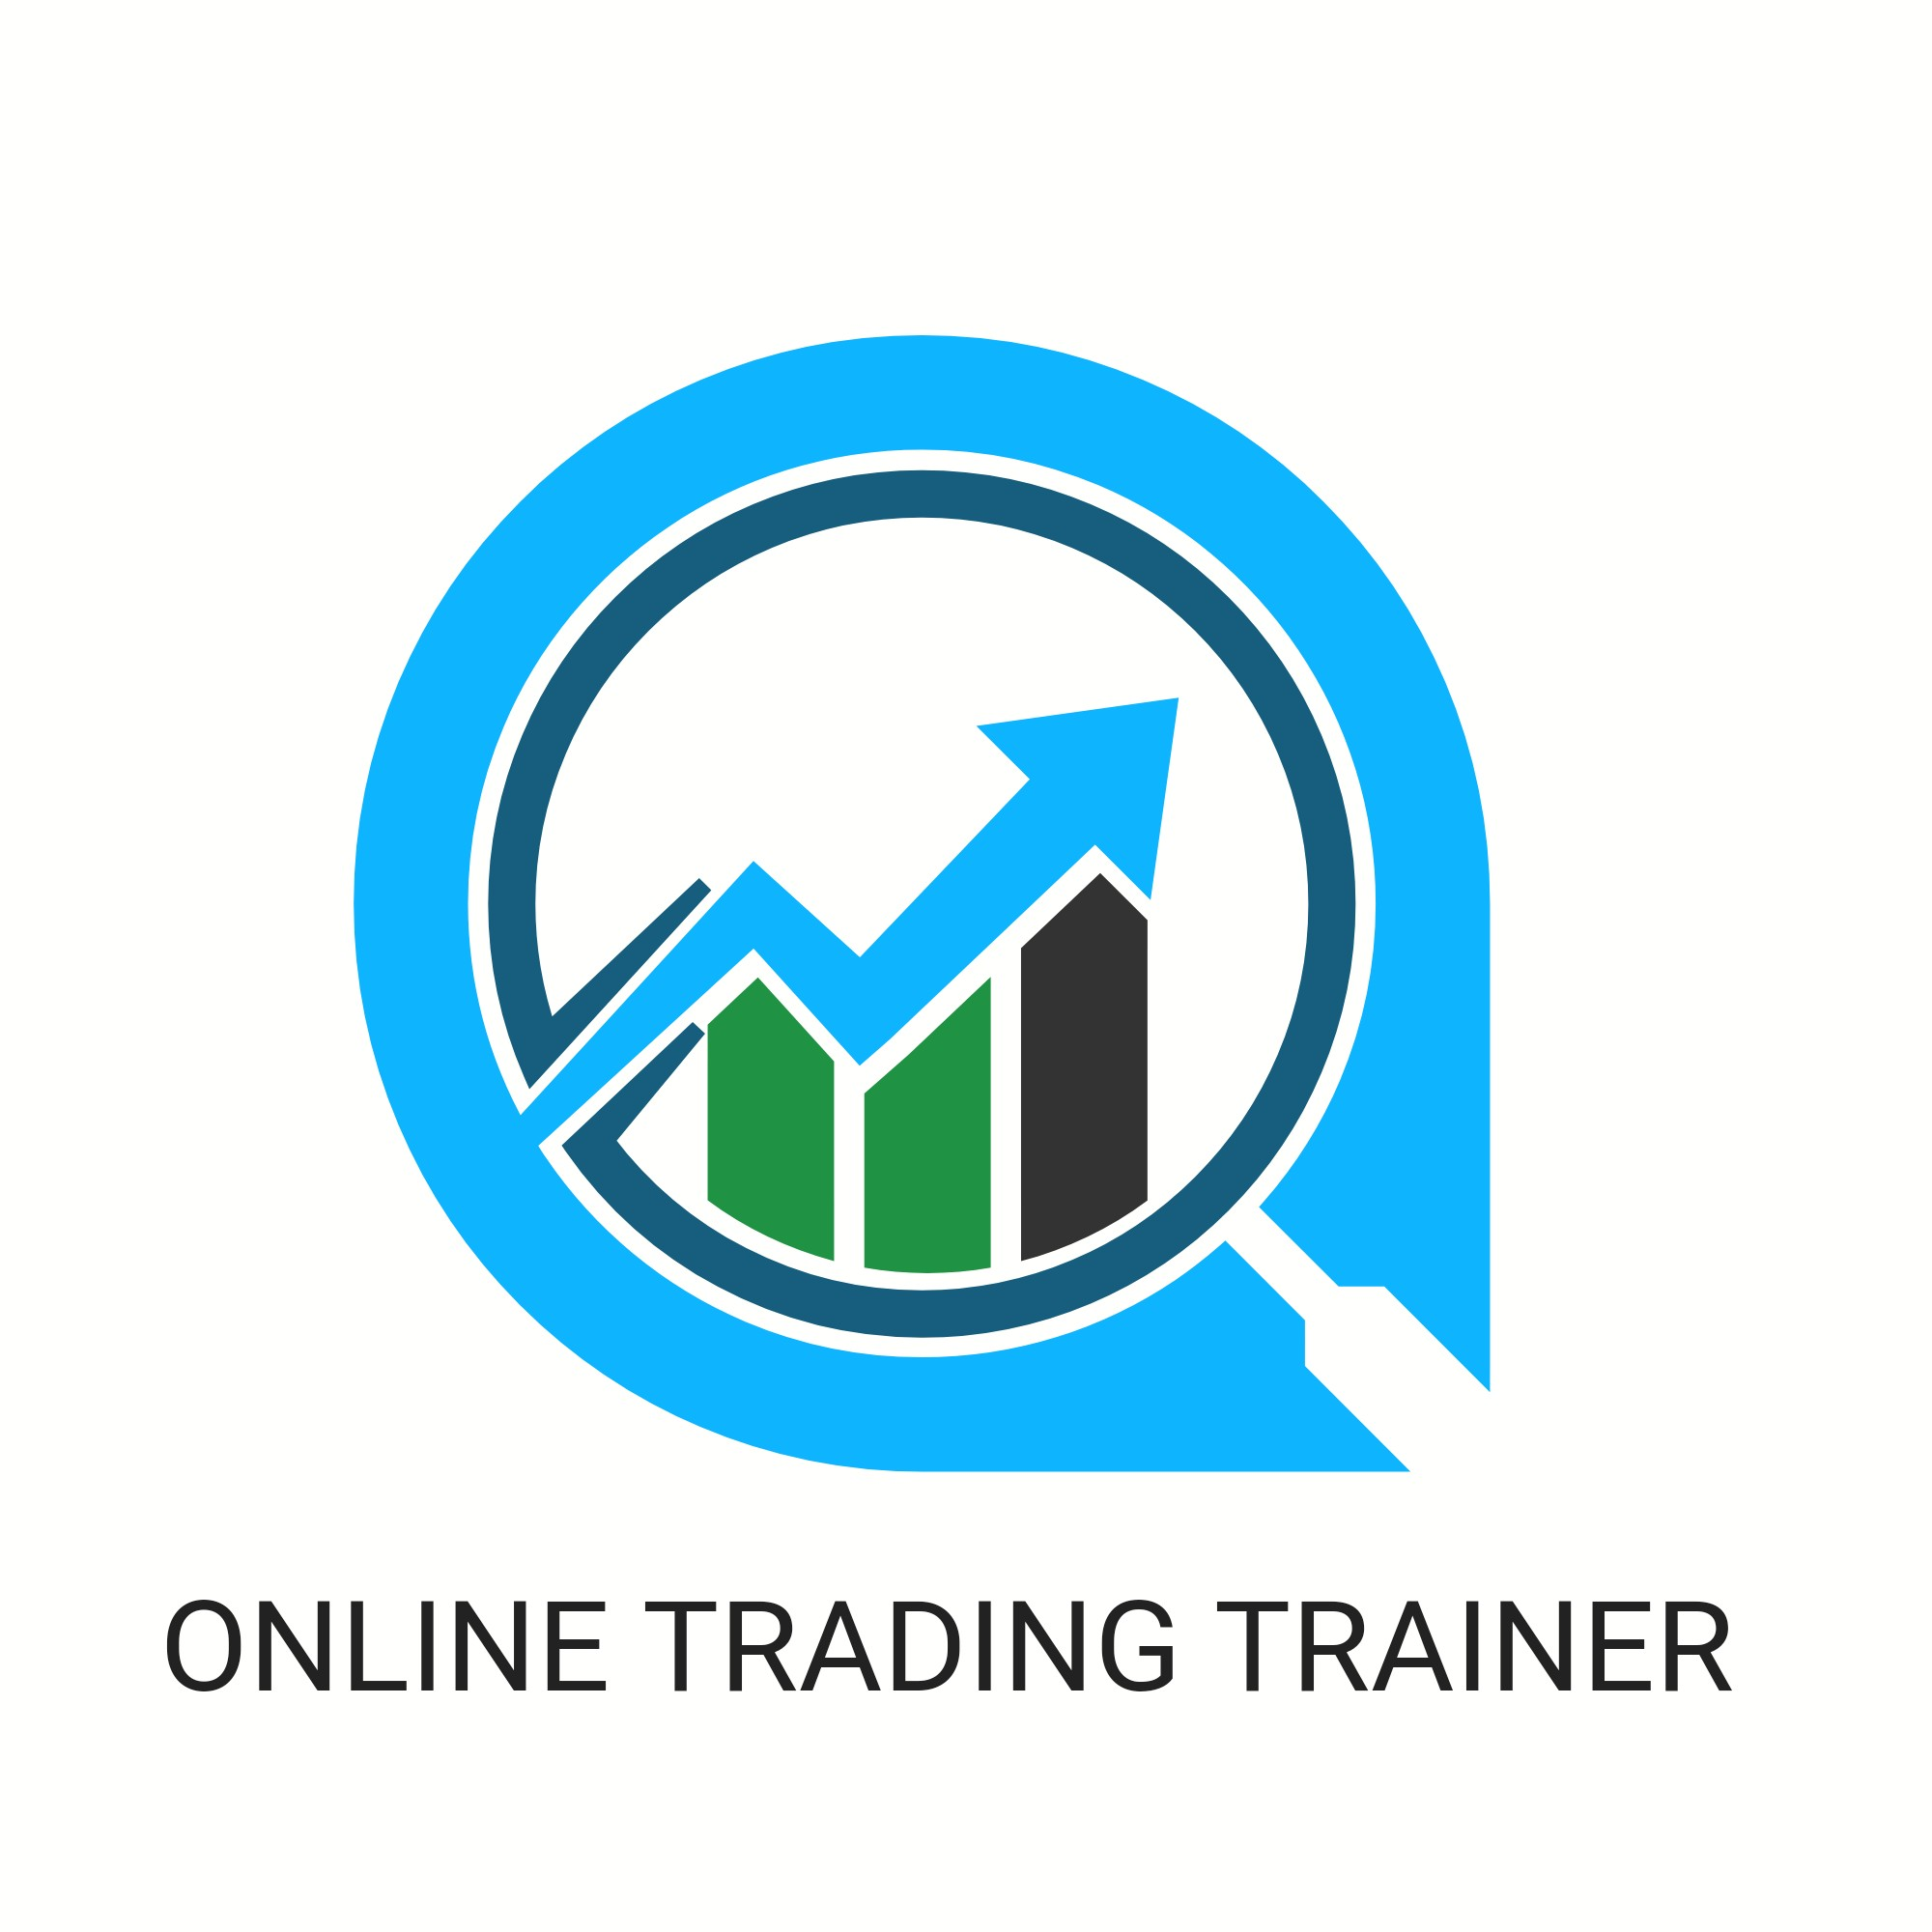 ONLINE TRADING TRAINER